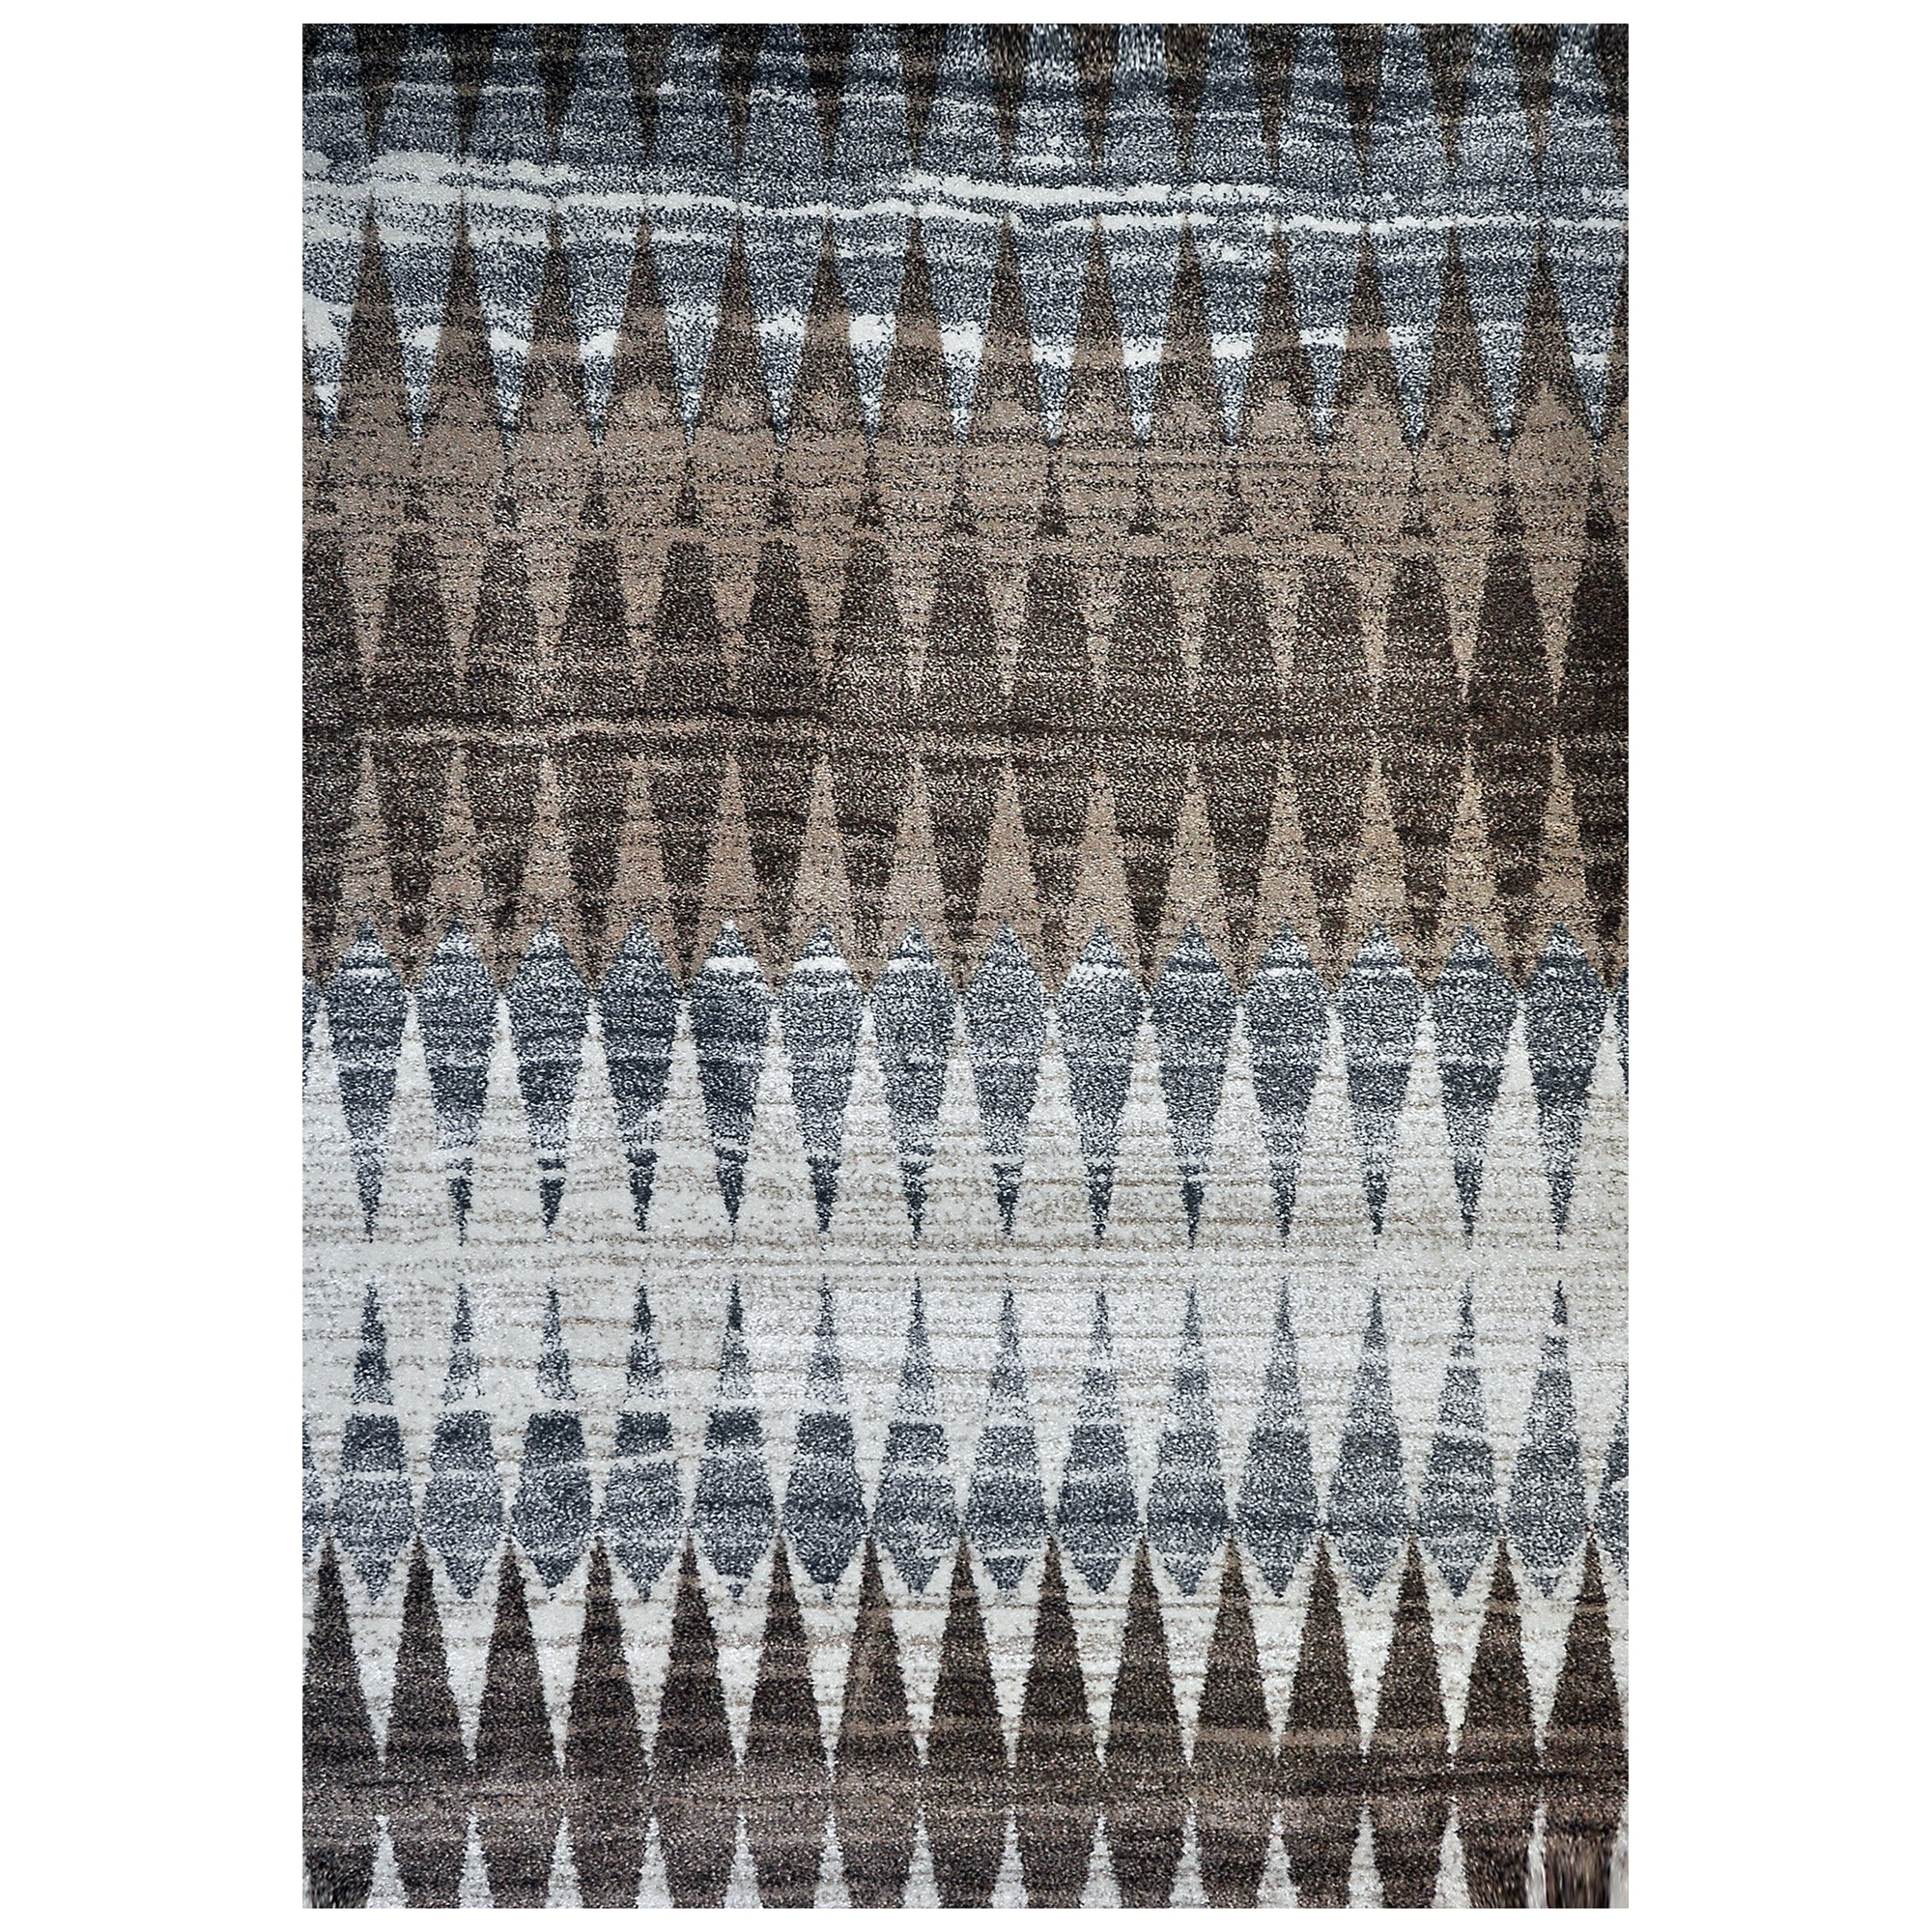 Studio Graham Turkish Made Modern Rug, 150x80cm, Brown / Blue / Ivory